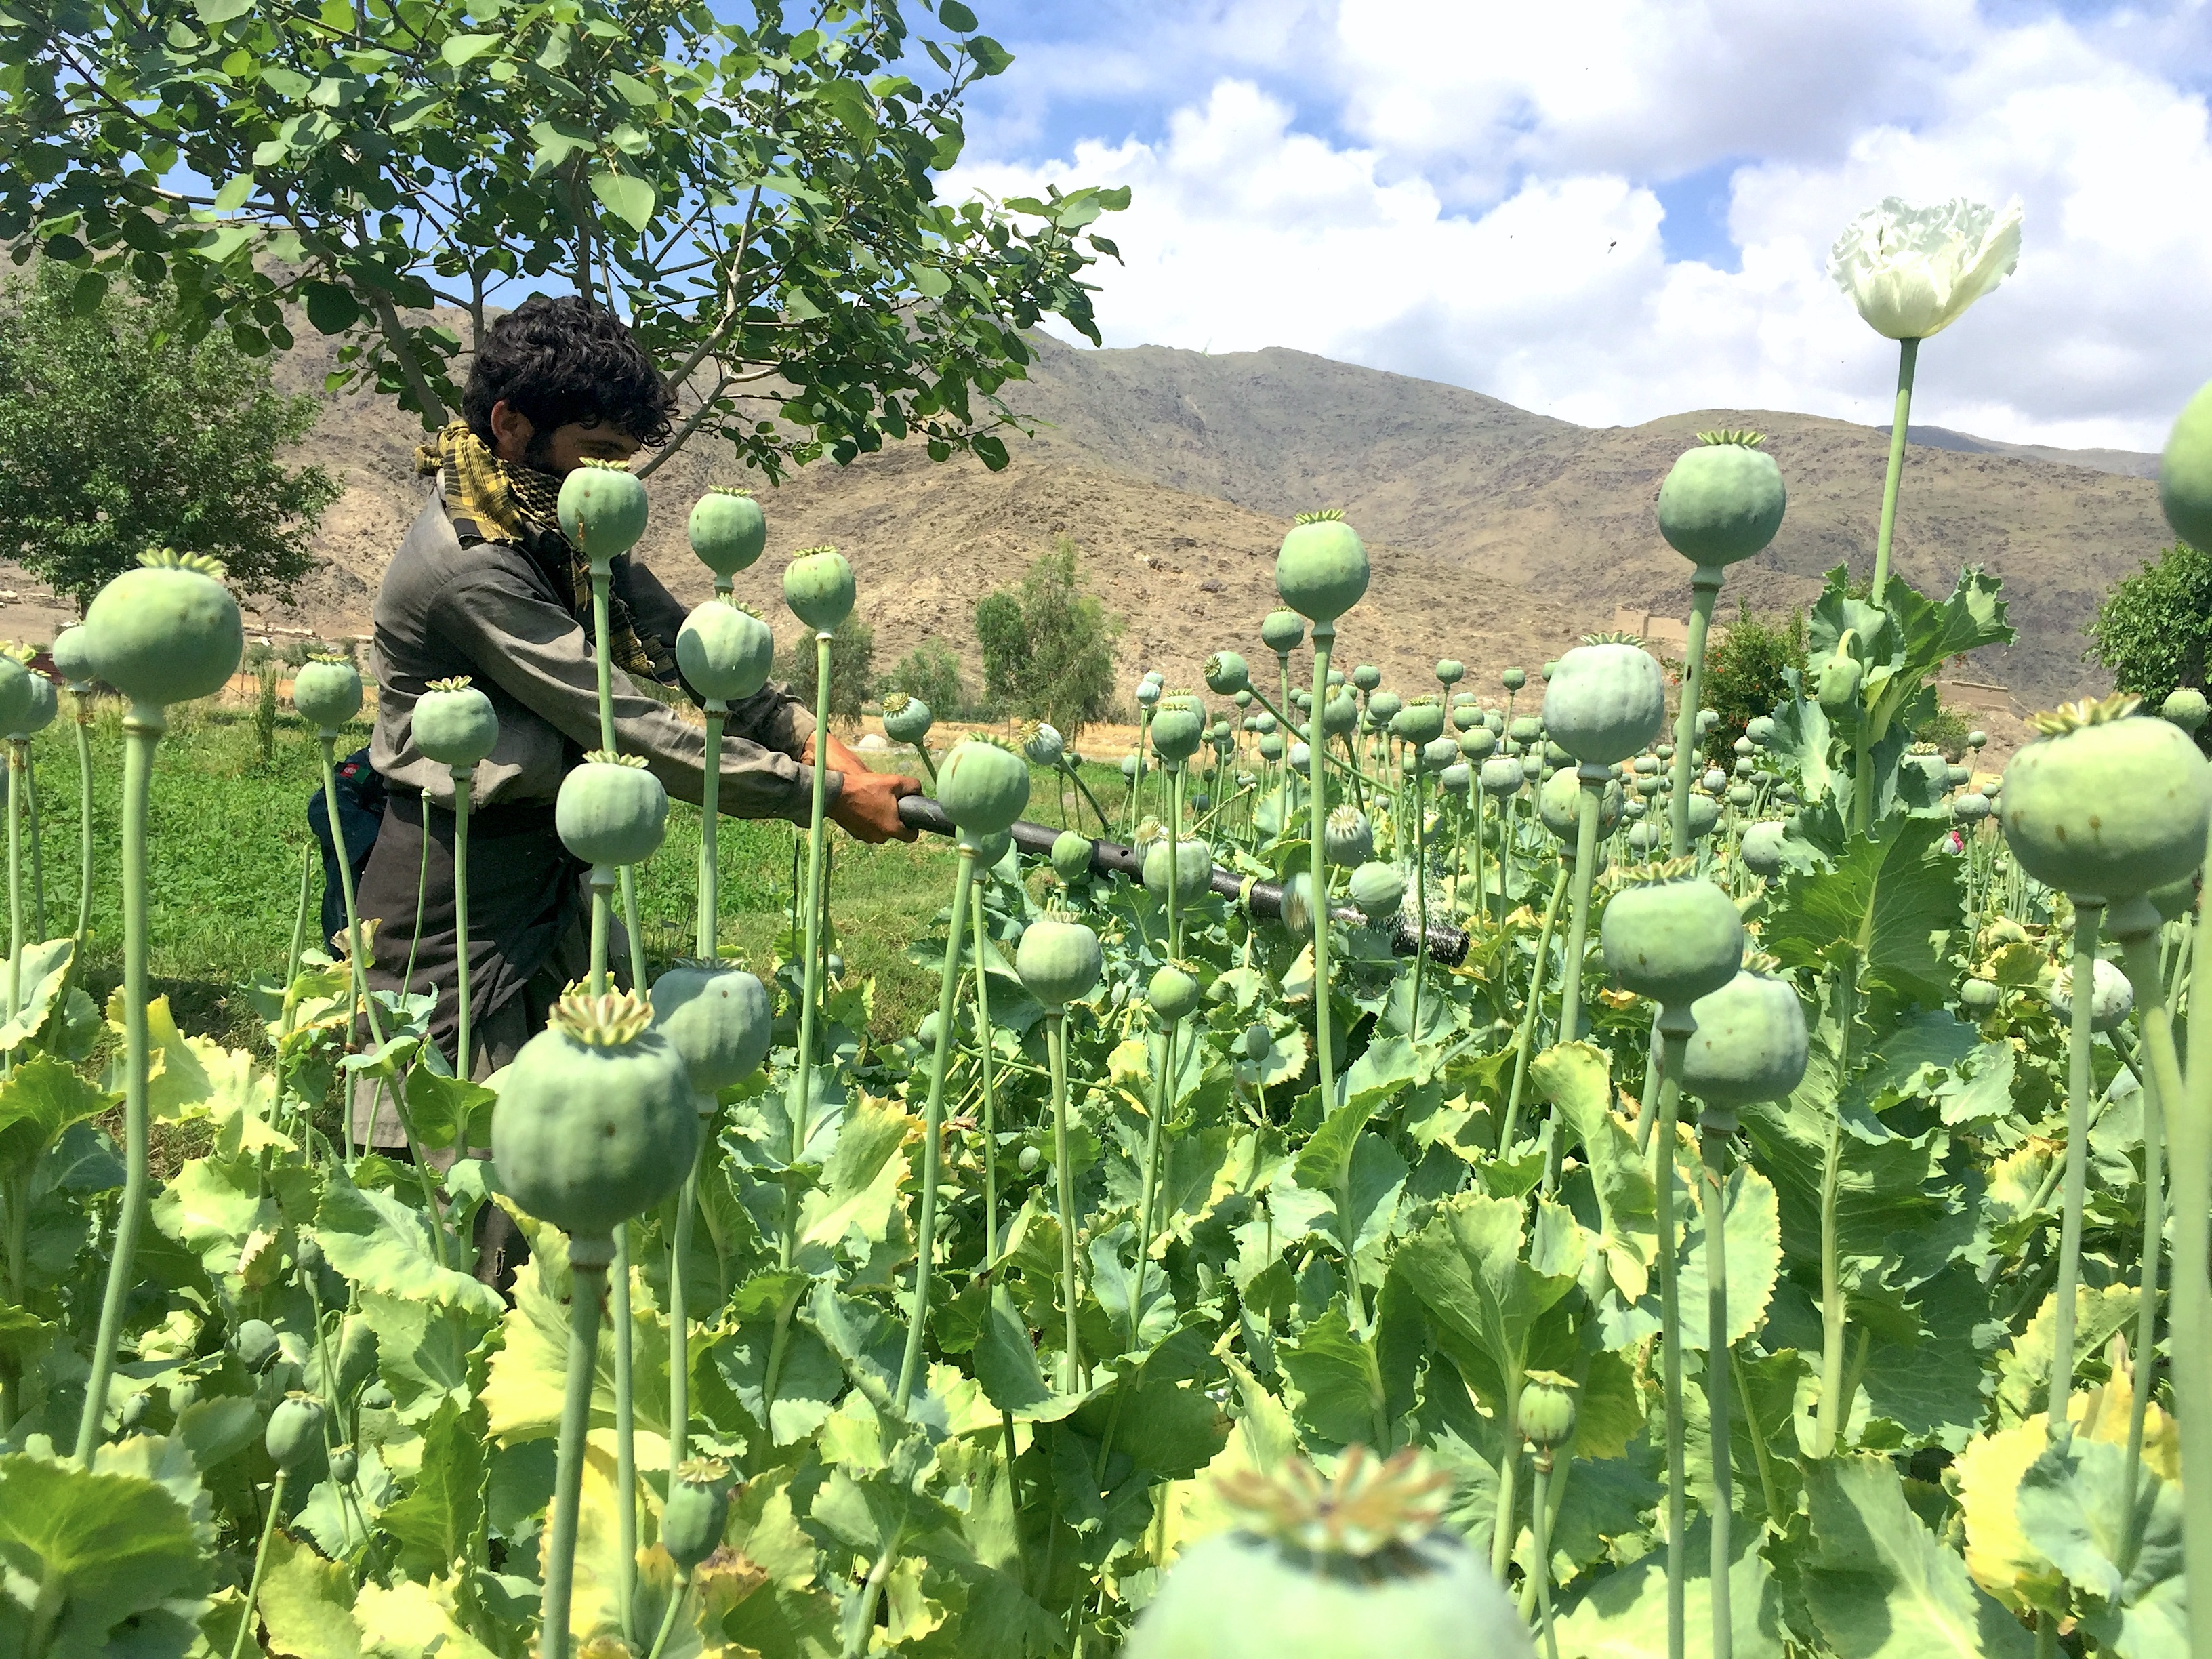 Opium poppy eradication campaign aims to wipe out Taliban funding sources